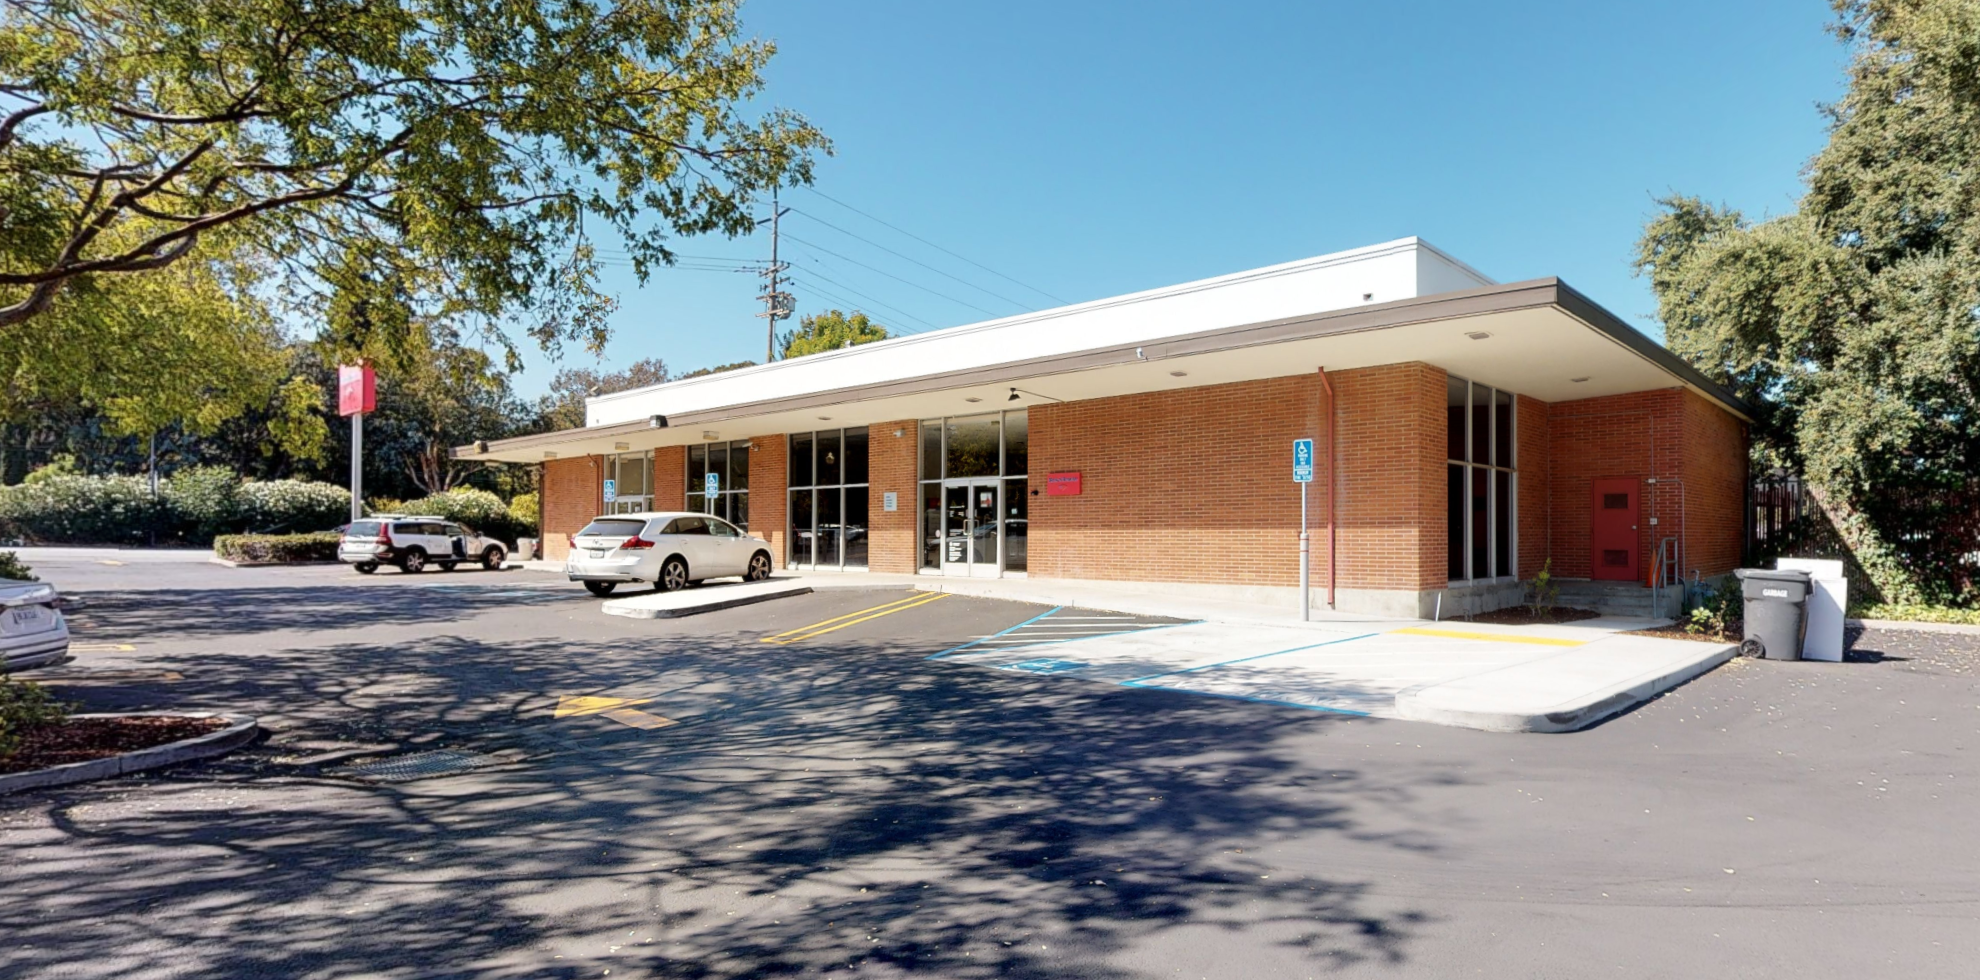 Bank of America financial center with walk-up ATM | 901 Fremont Ave, Los Altos, CA 94024